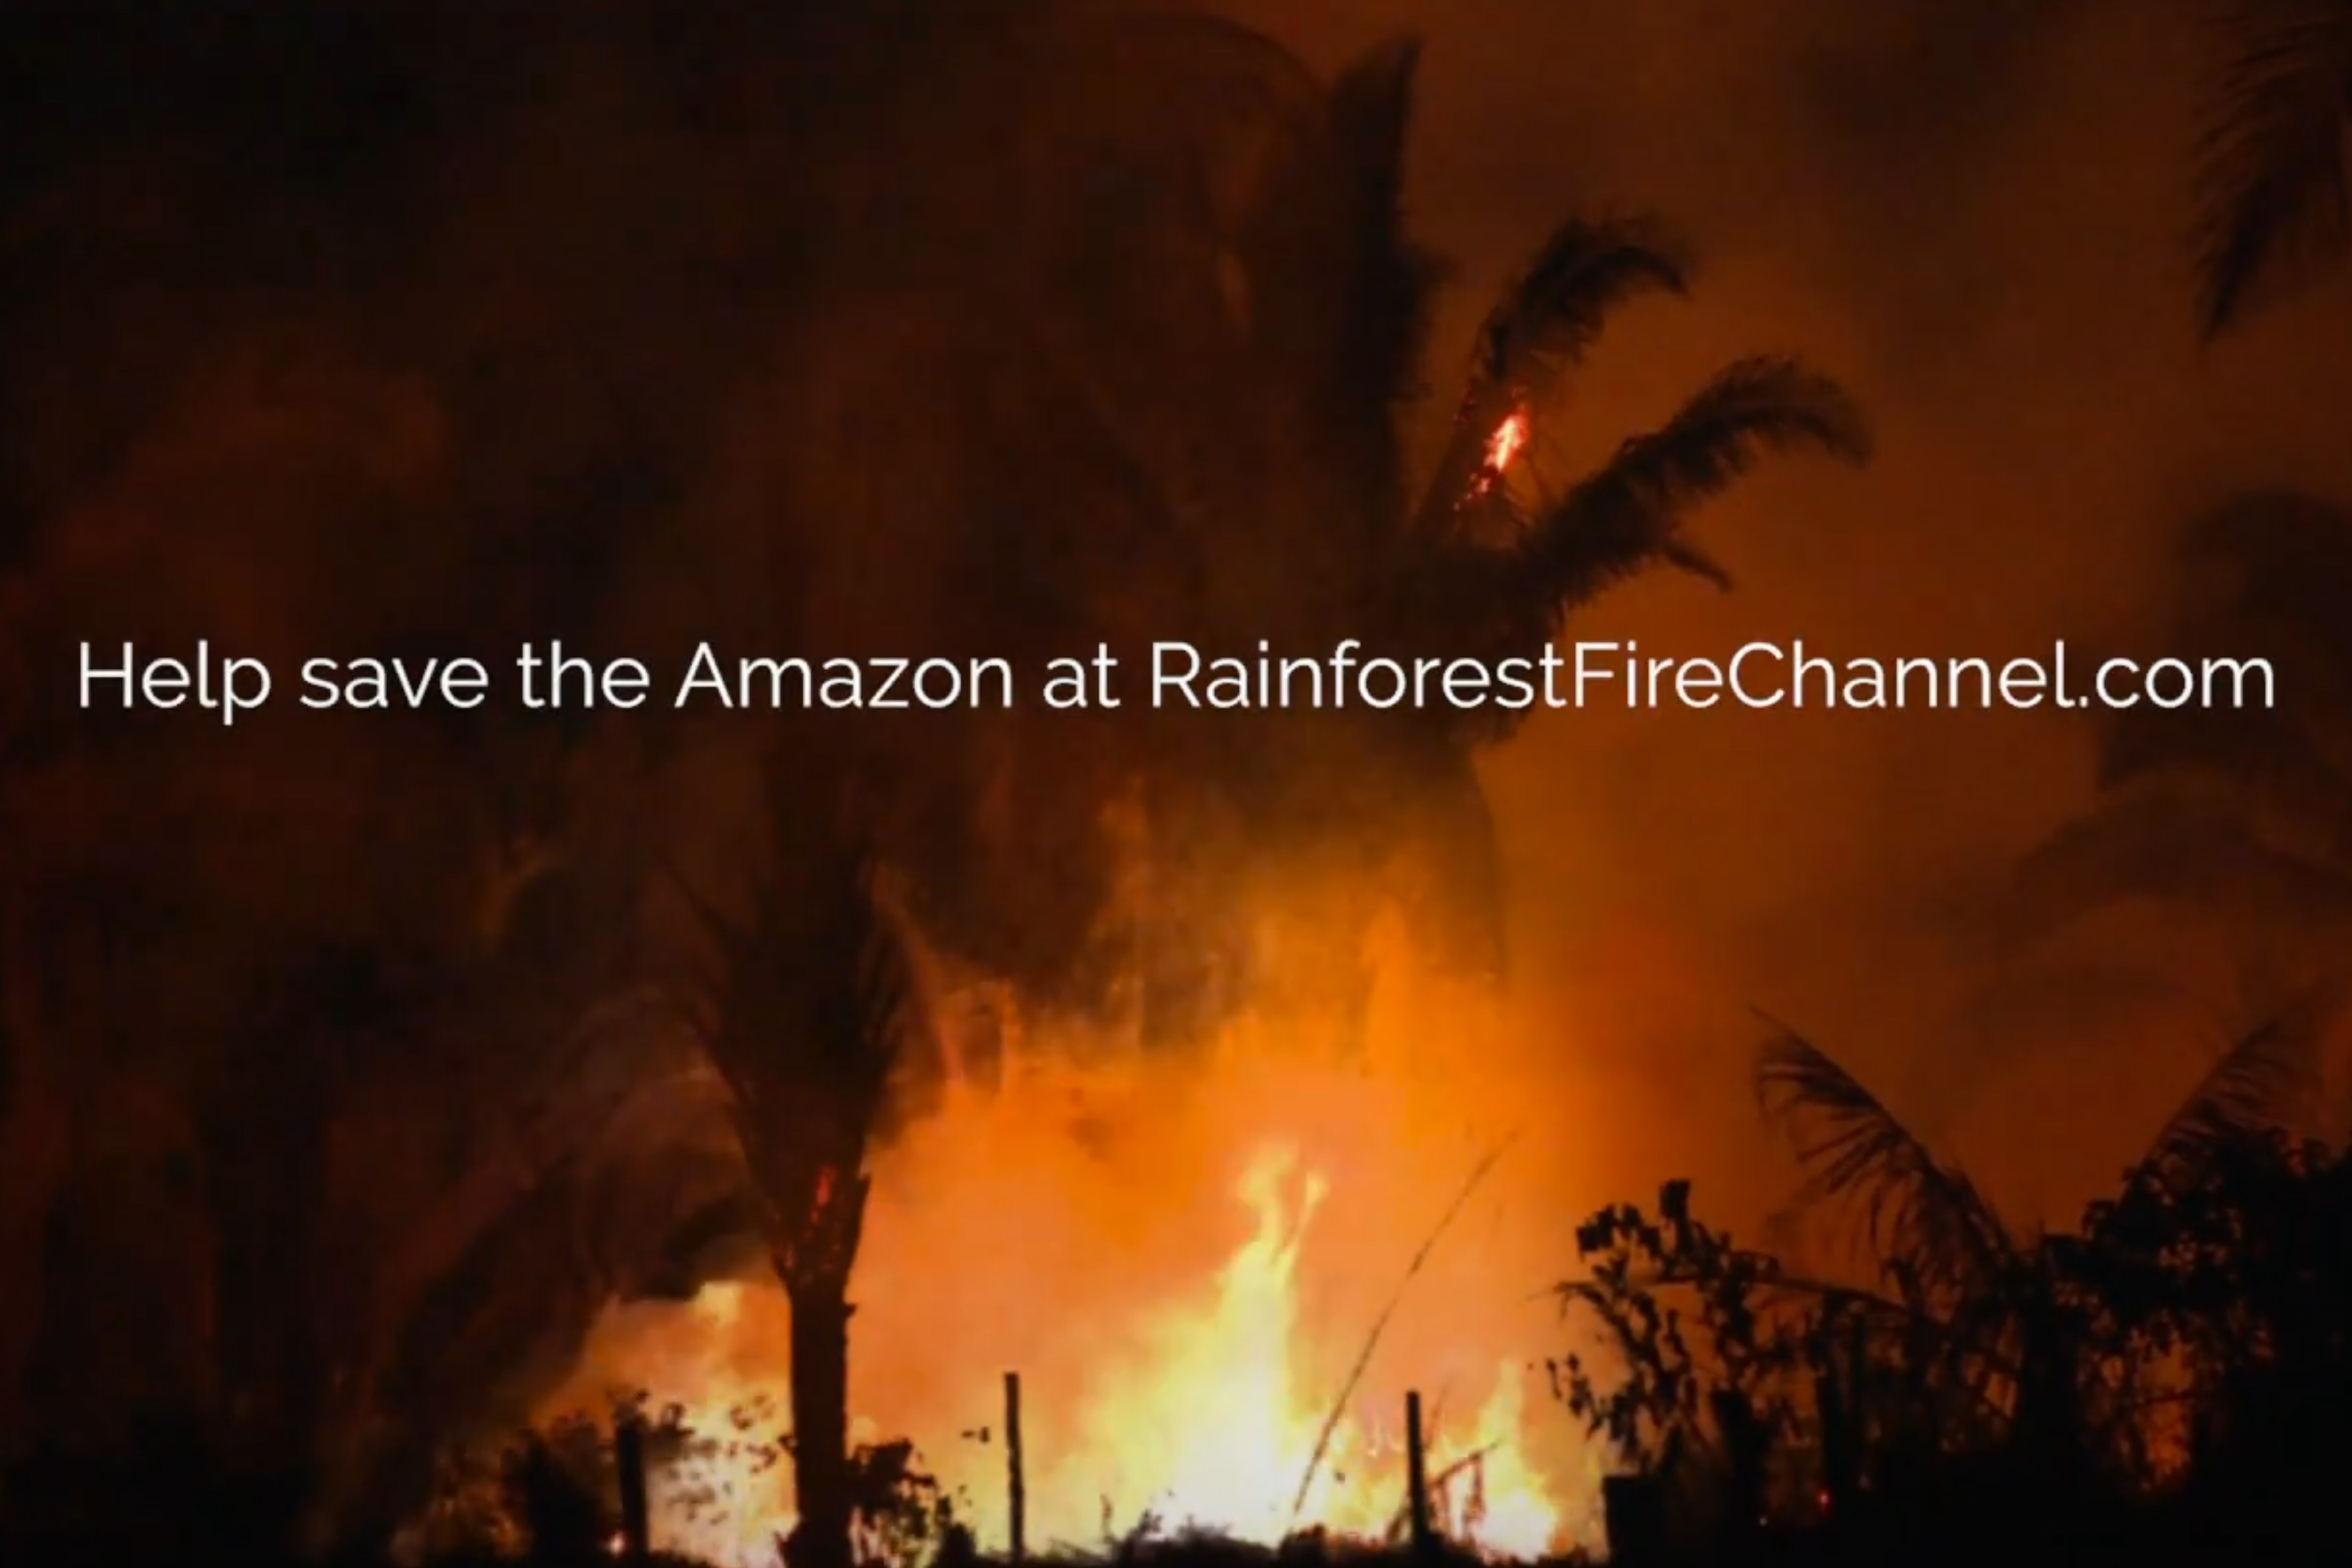 The classic burning yule log becomes a blazing rainforest in PSA on plight of Amazon